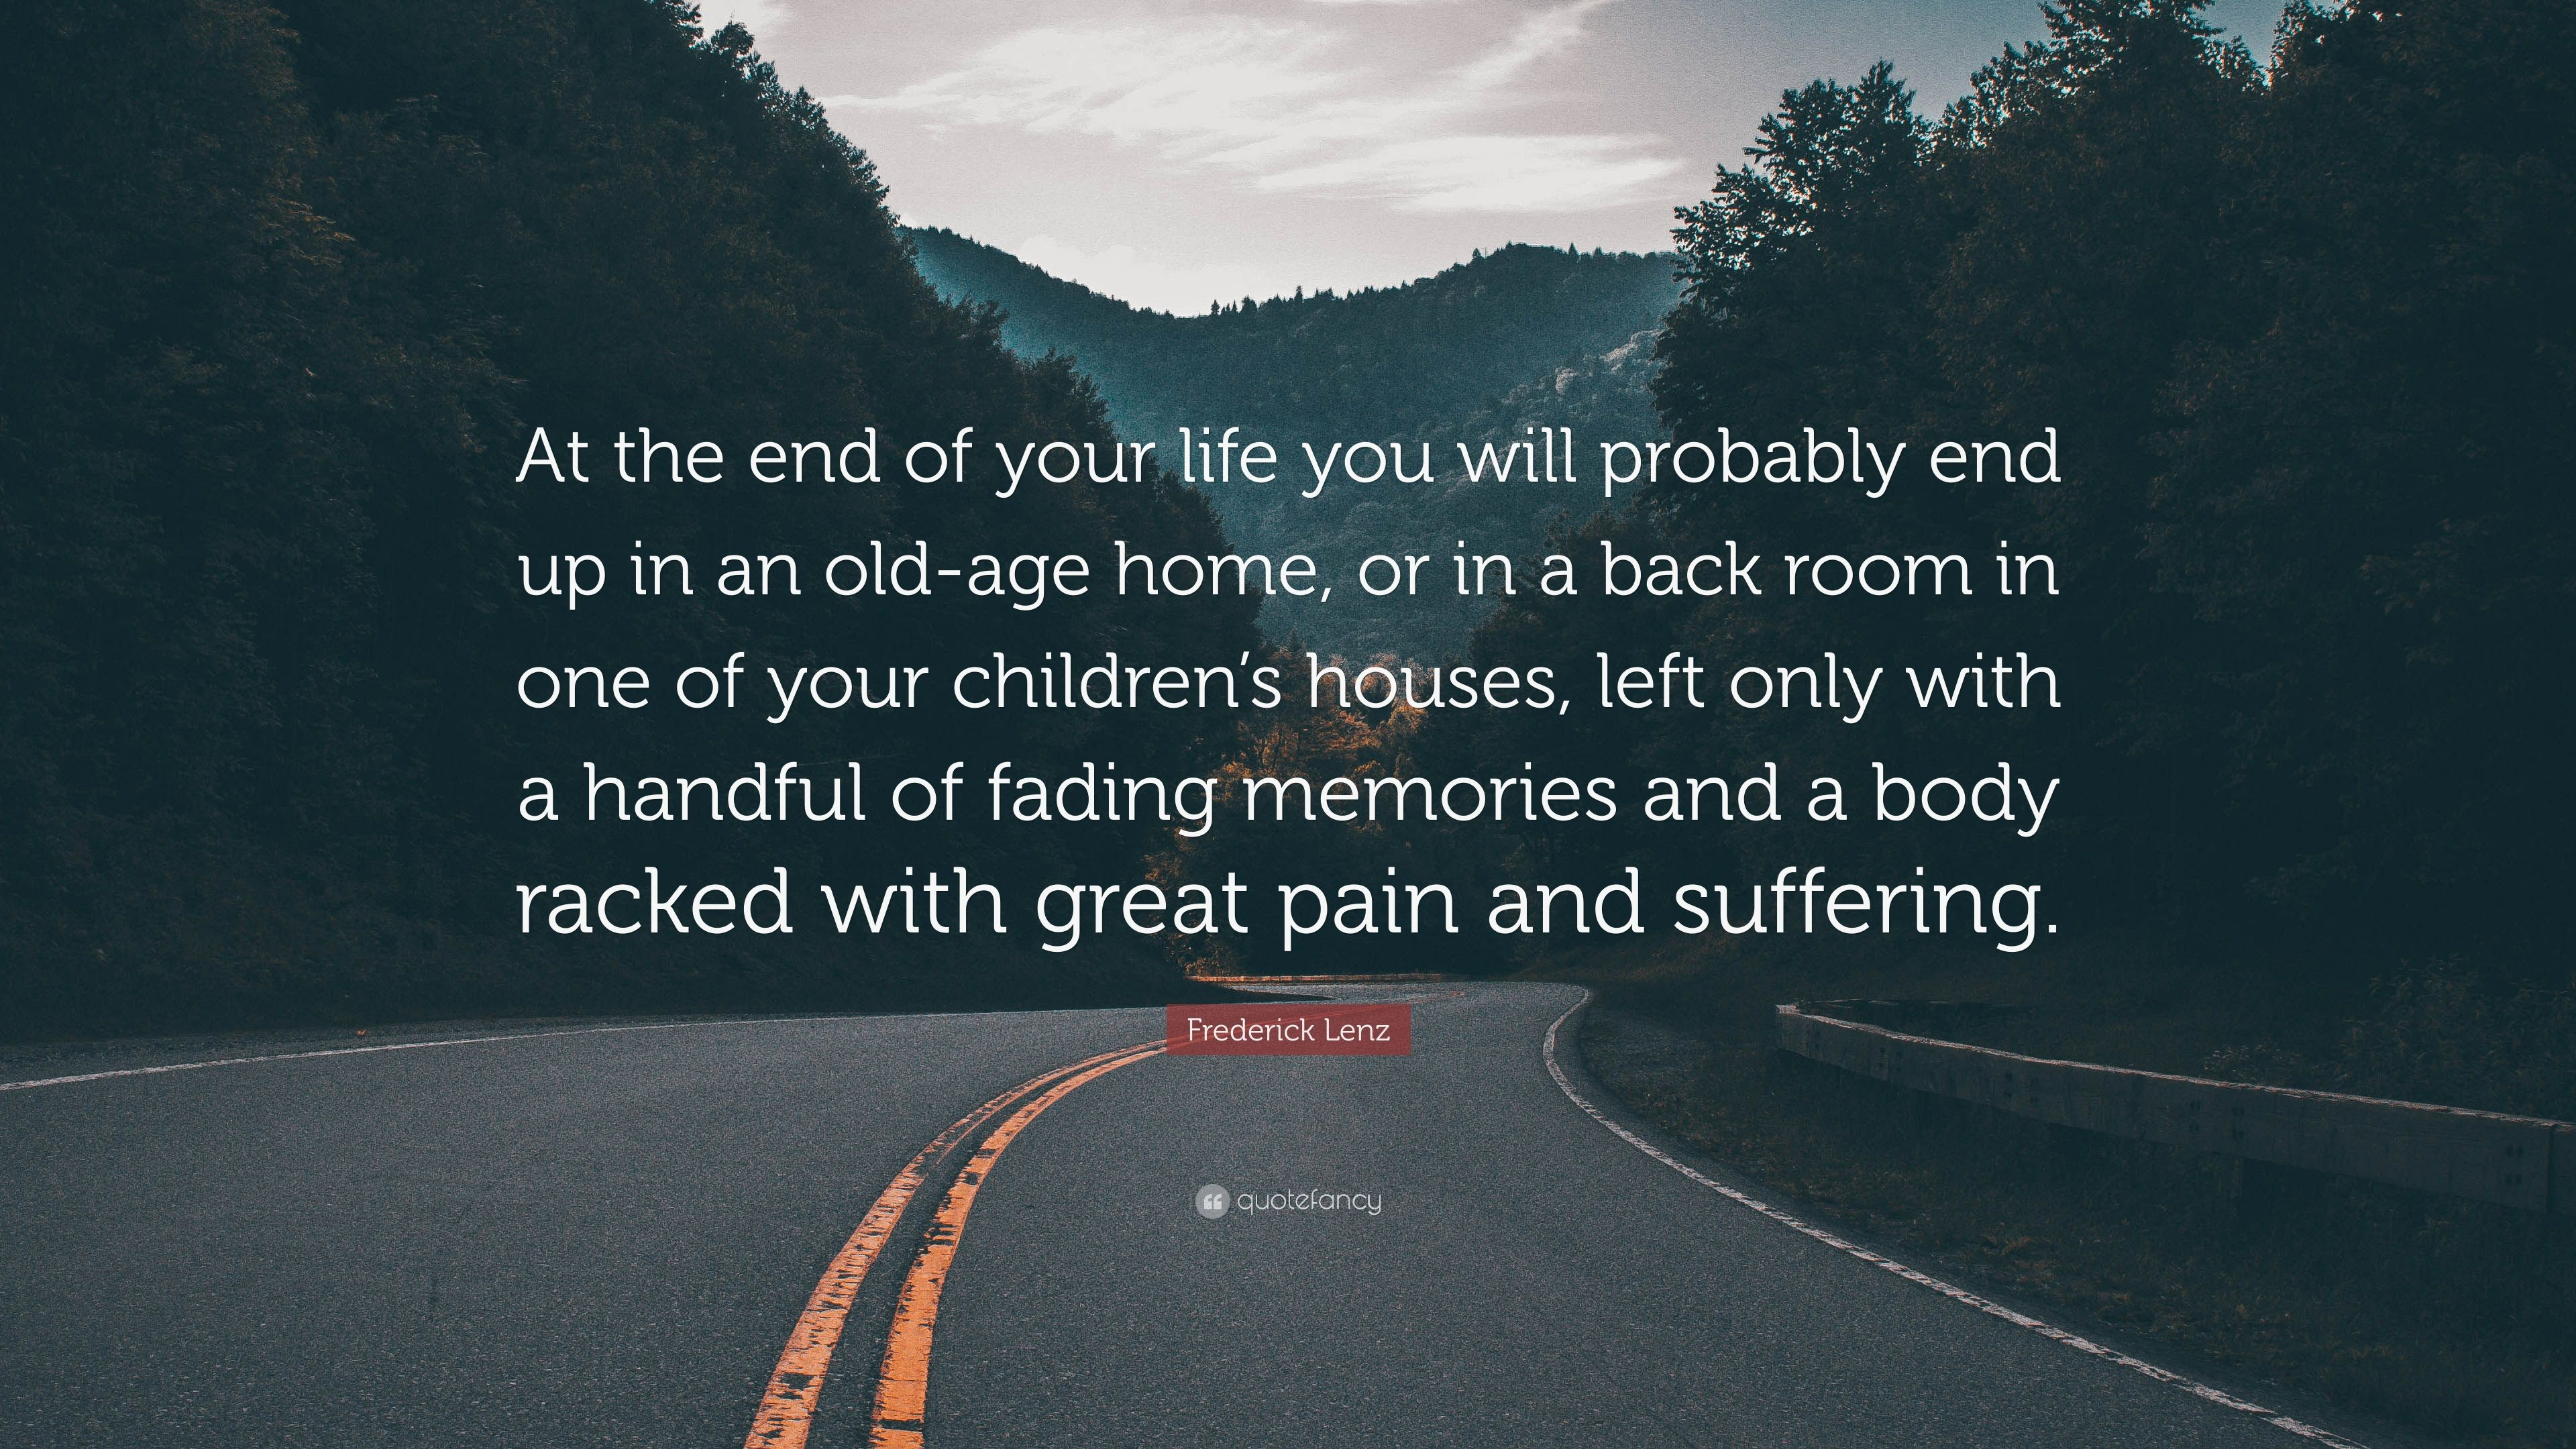 Frederick Lenz Quote At The End Of Your Life You Will Probably End Up In An Old Age Home Or In A Back Room In One Of Your Children S Houses 7 Wallpapers